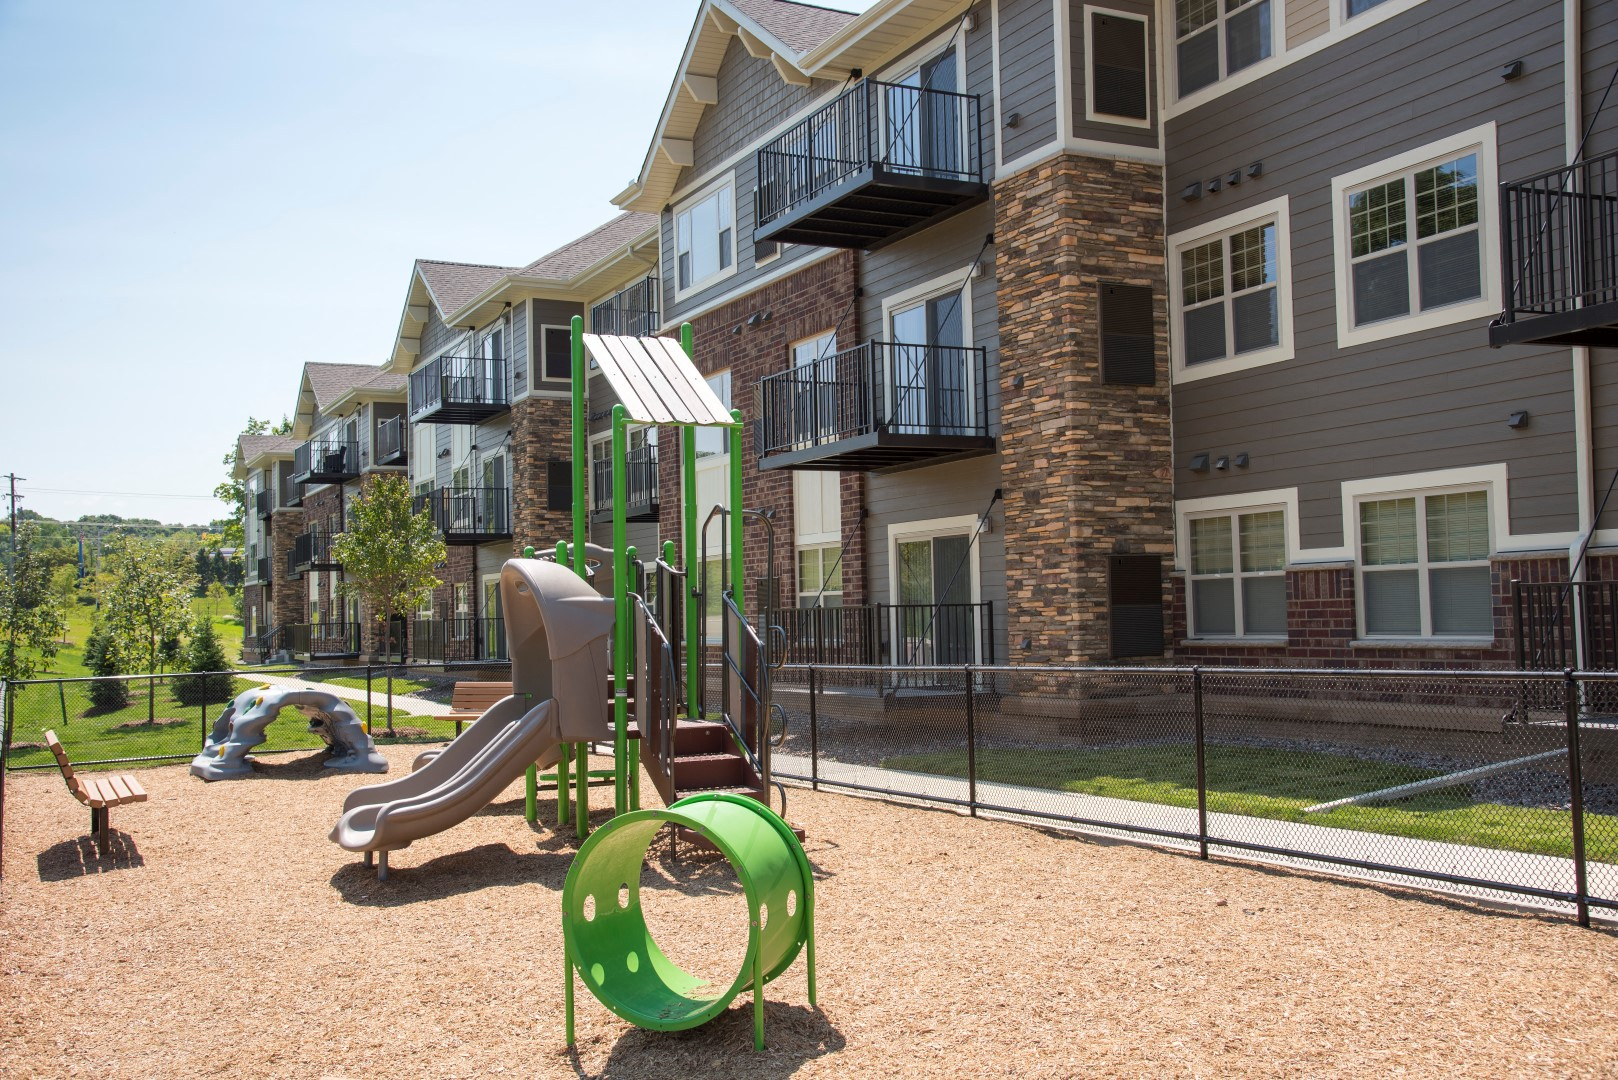 Pike Lake Marsh Apartments Exterior Playground for kids